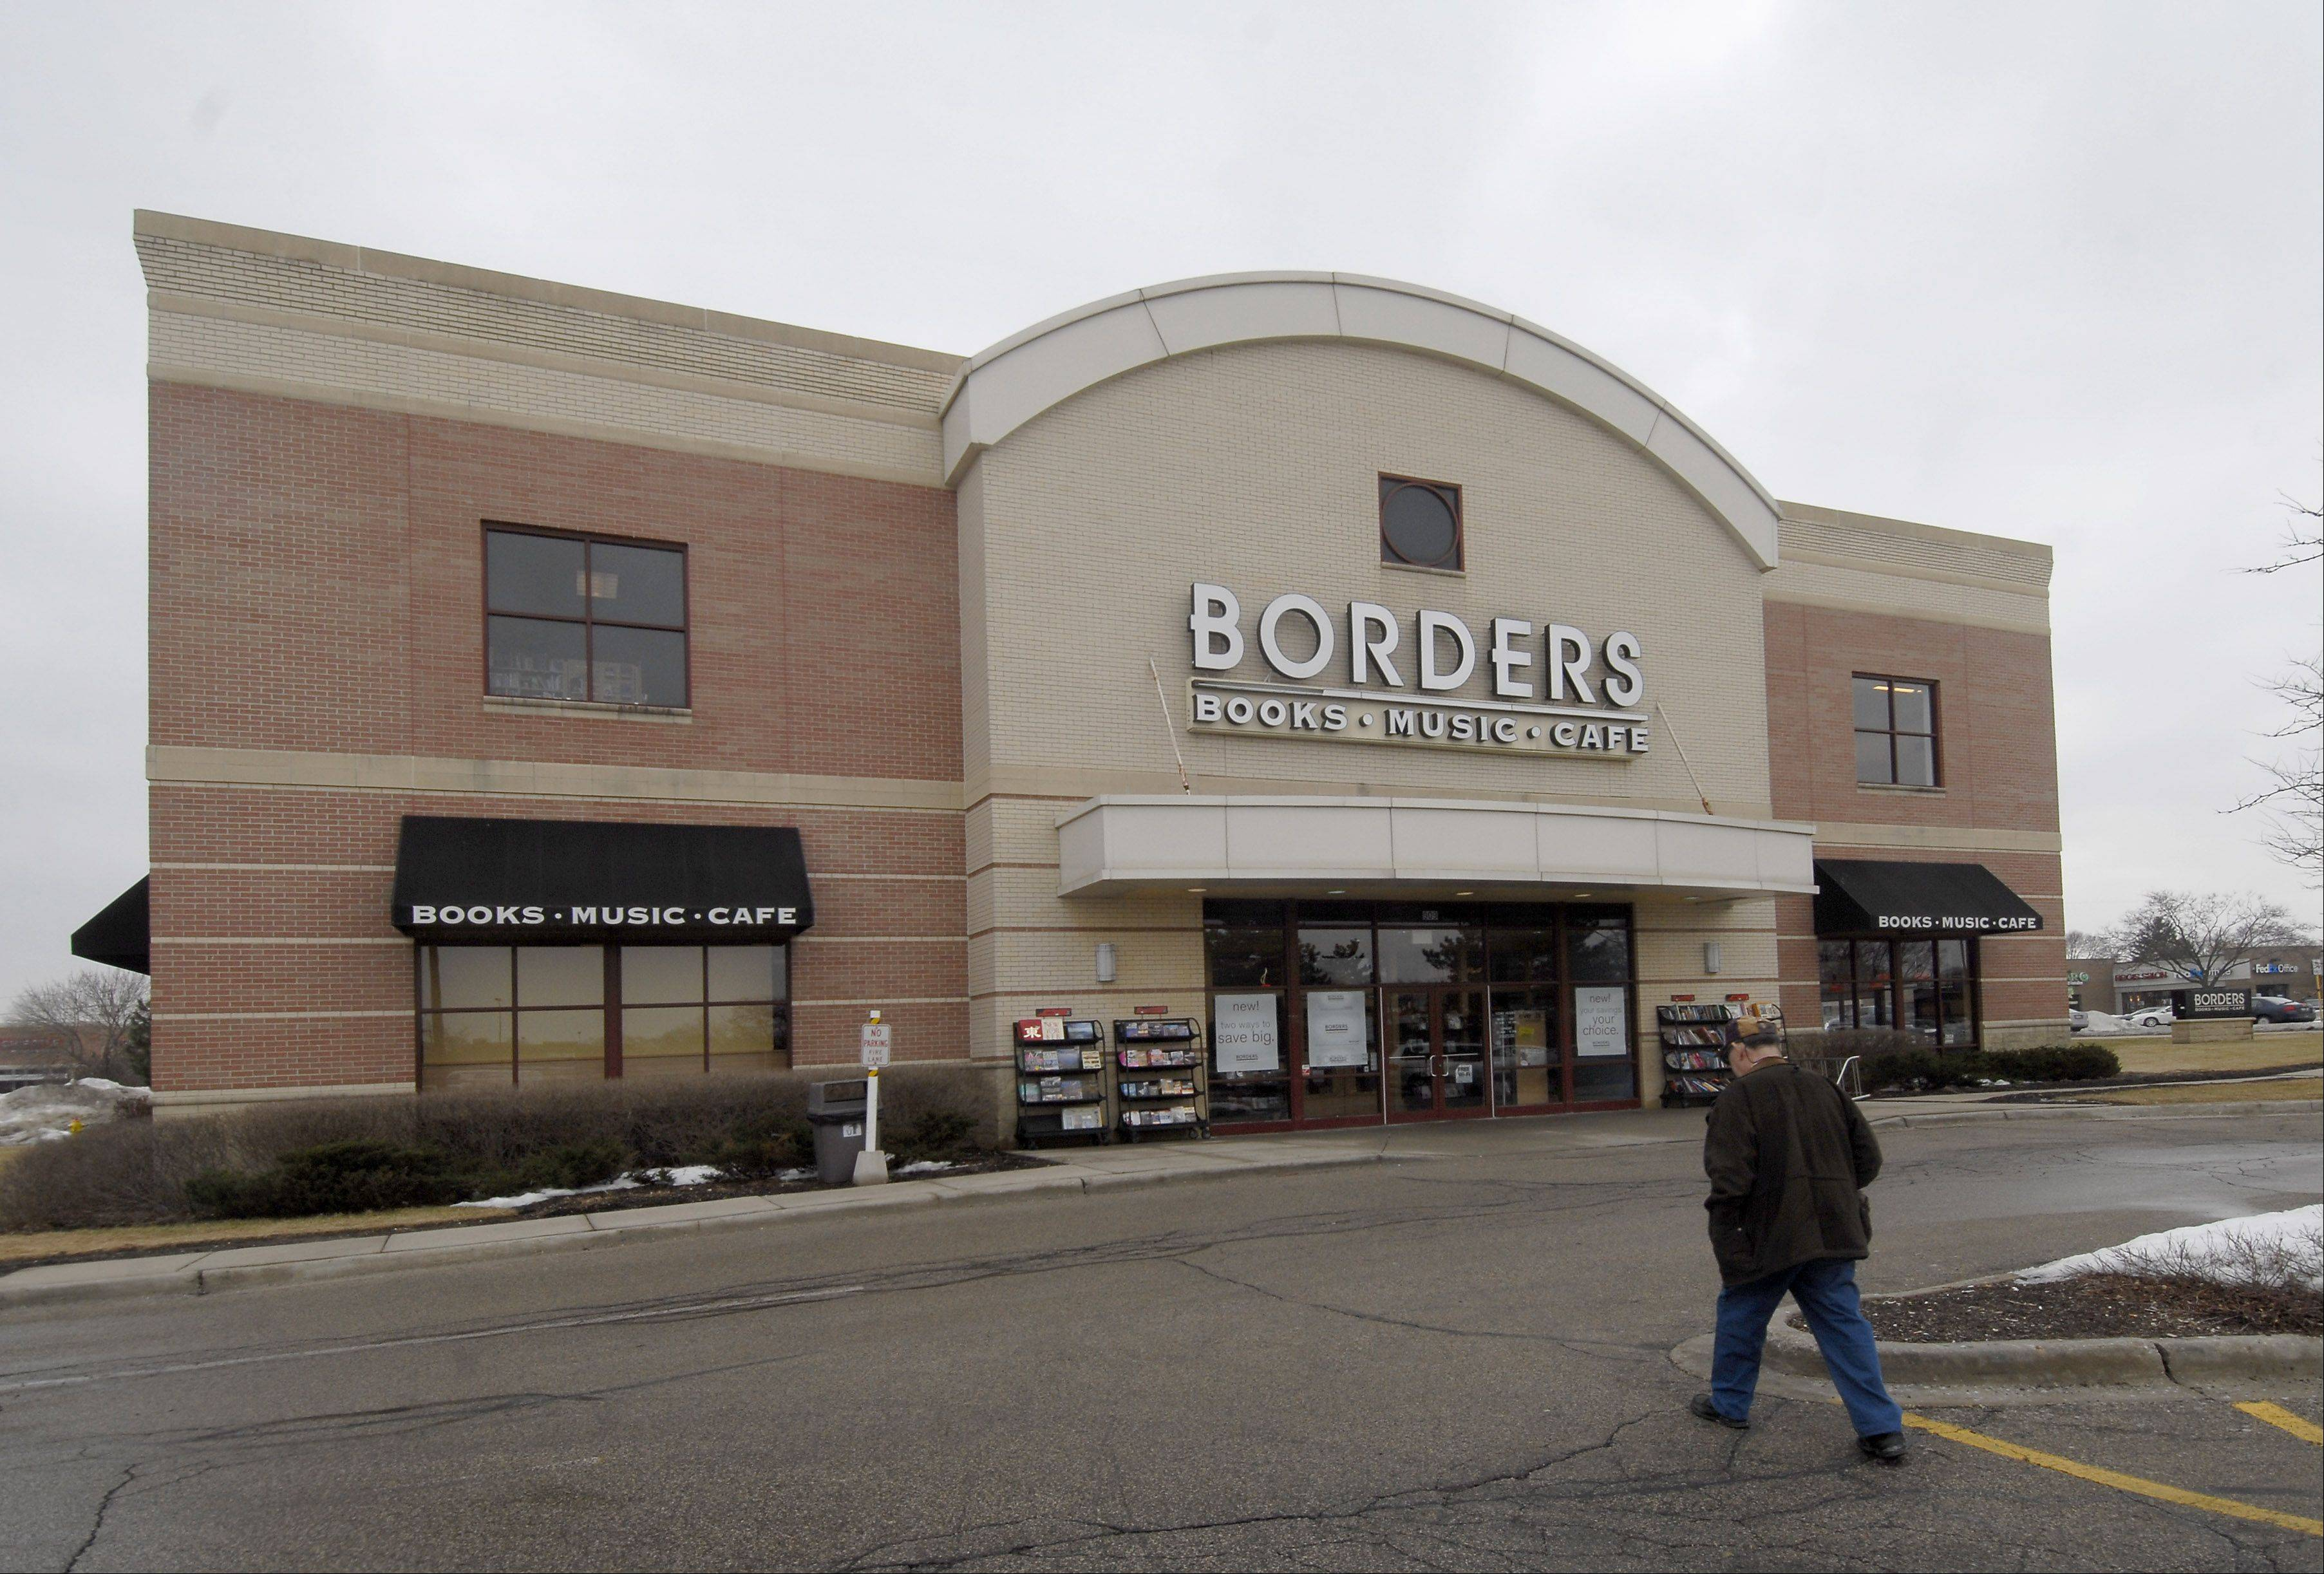 The Borders building in Mount Prospect, pictured here right before the store closed in 2011, will soon be torn down to make way for smaller retail buildings. Village officials expect the demolition to be complete next month.